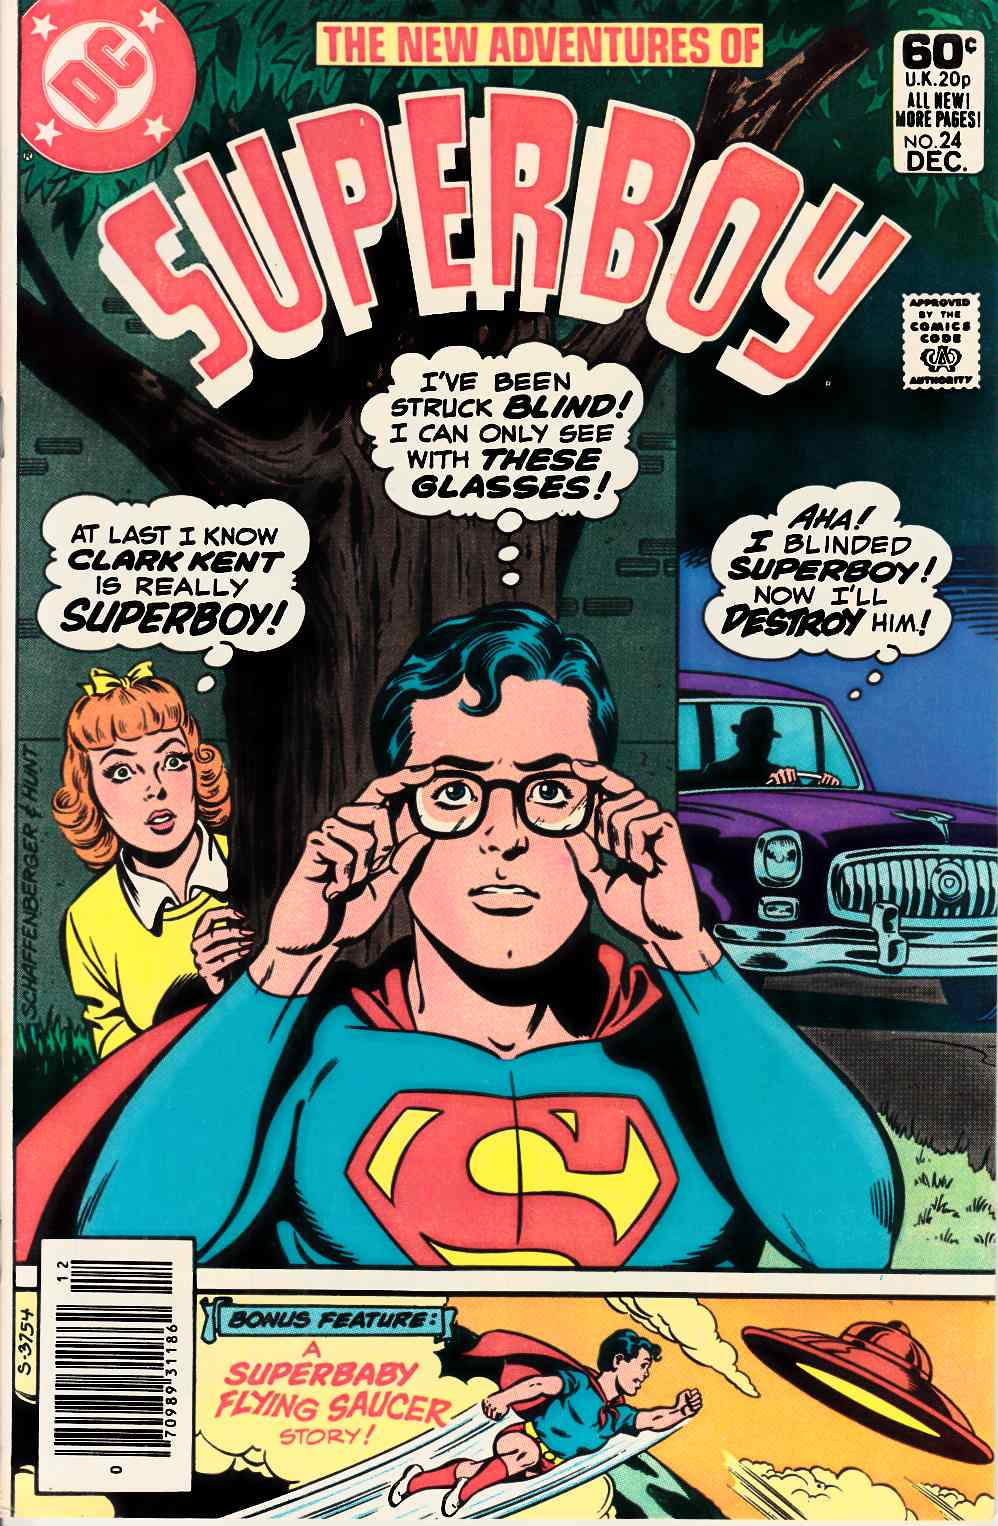 New Adventures of Superboy #24 Newsstand Very Fine Plus (8.5) [DC Comic] LARGE